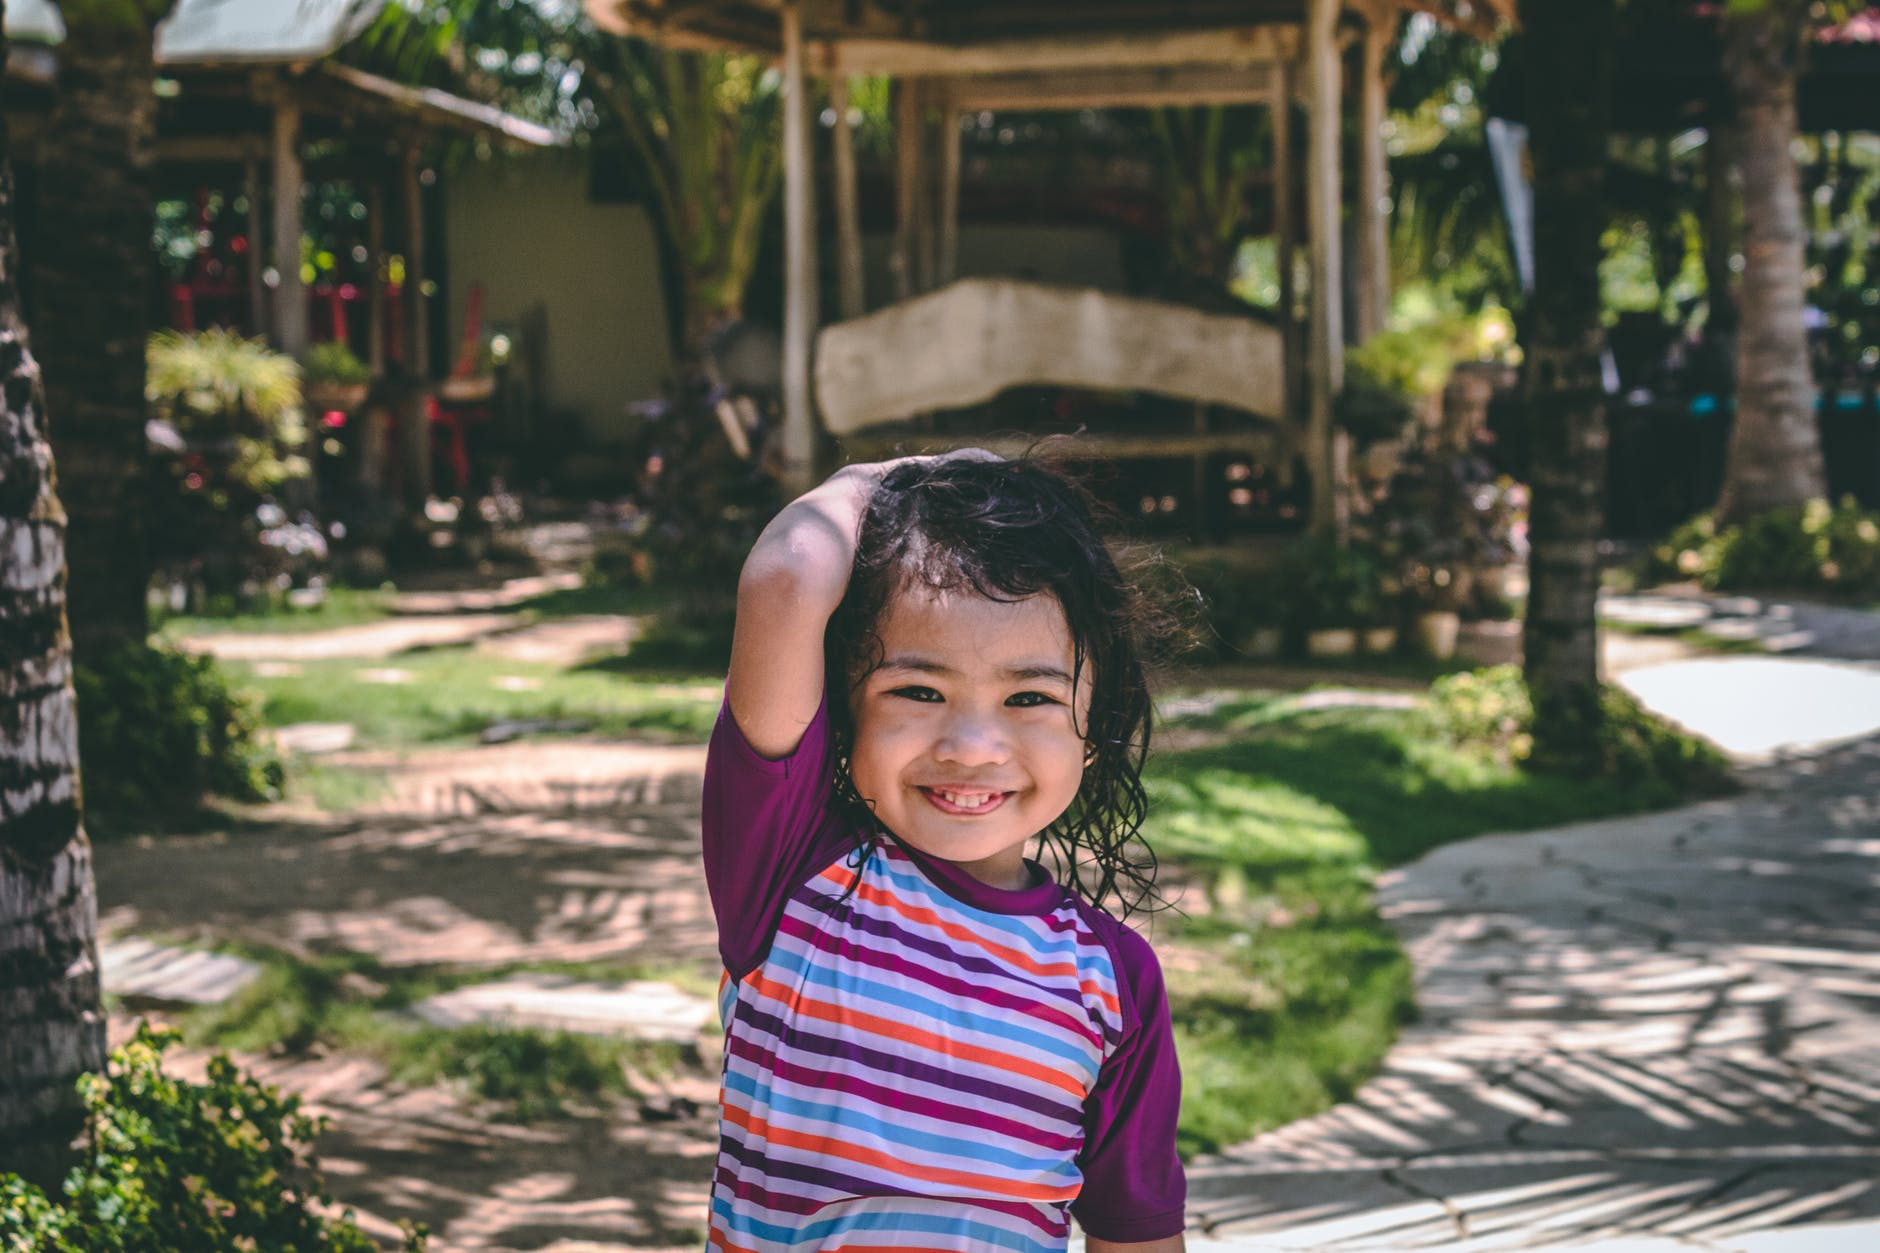 smiling girl wearing purple and multicolored striped top